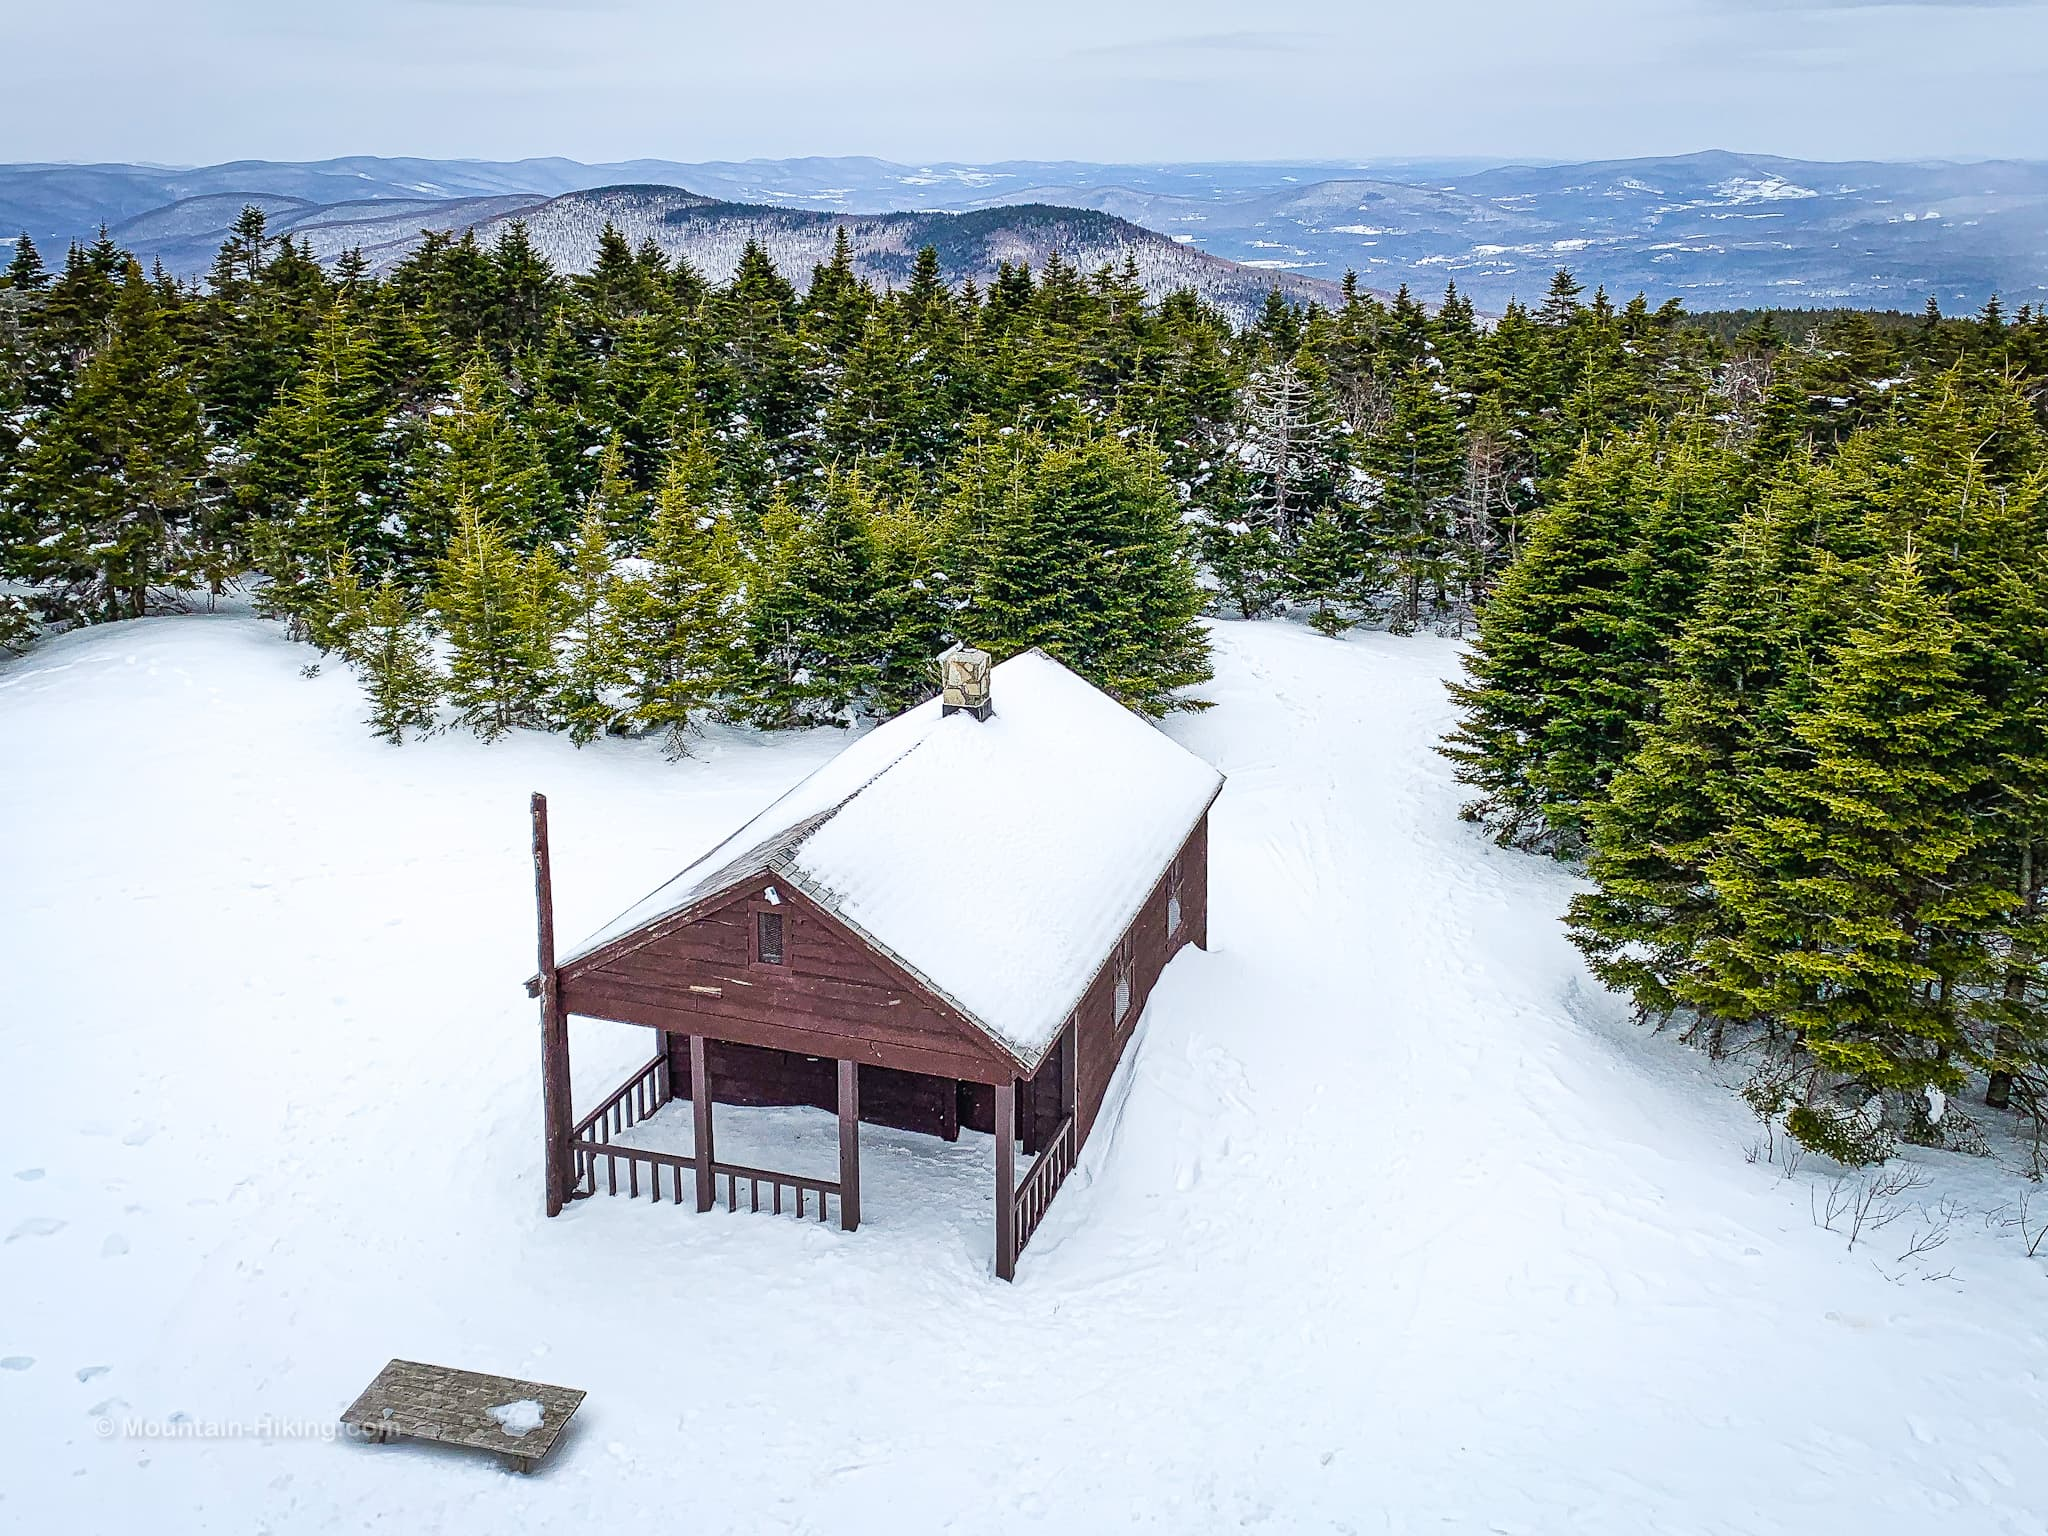 cabin in snow on mountain summit